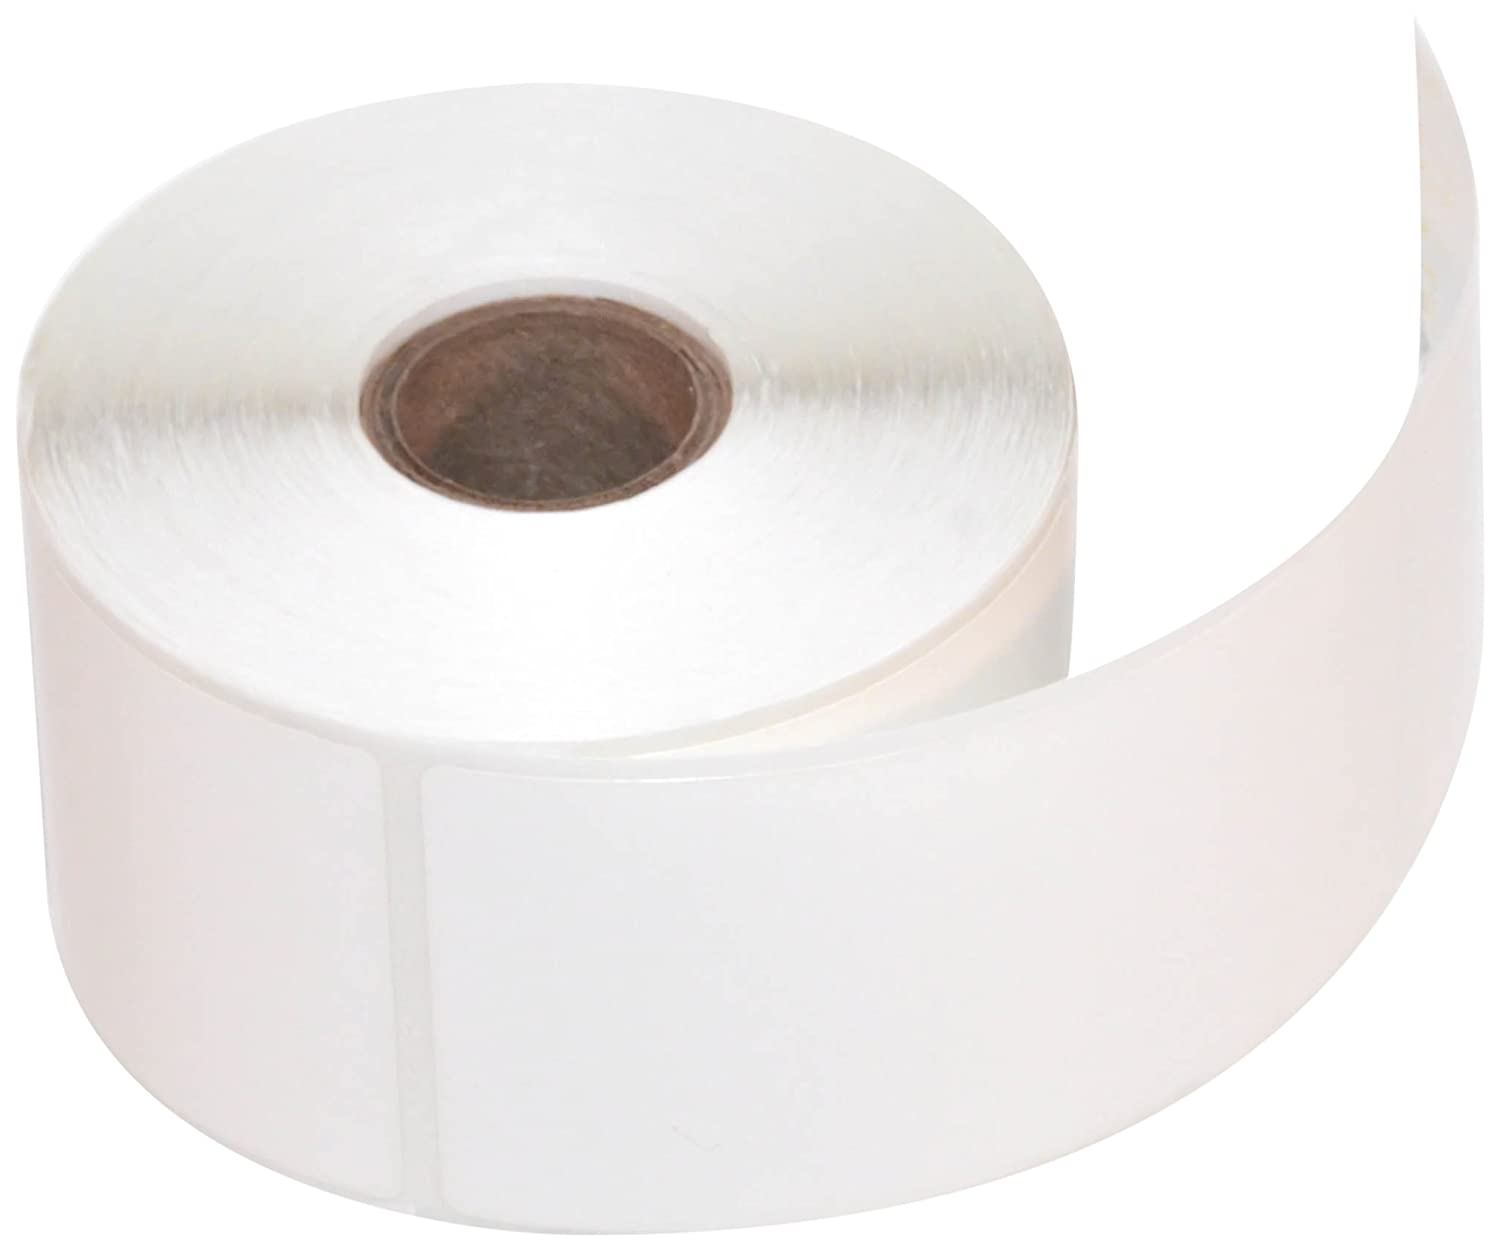 CompuLabel Direct Thermal Labels, 2-Inch x 4 Inch, White, Roll, Permanent Adhesive, Perforations Between Labels, 350 per Roll, 12 Rolls per Carton (530572) Continental Datalabel Inc.